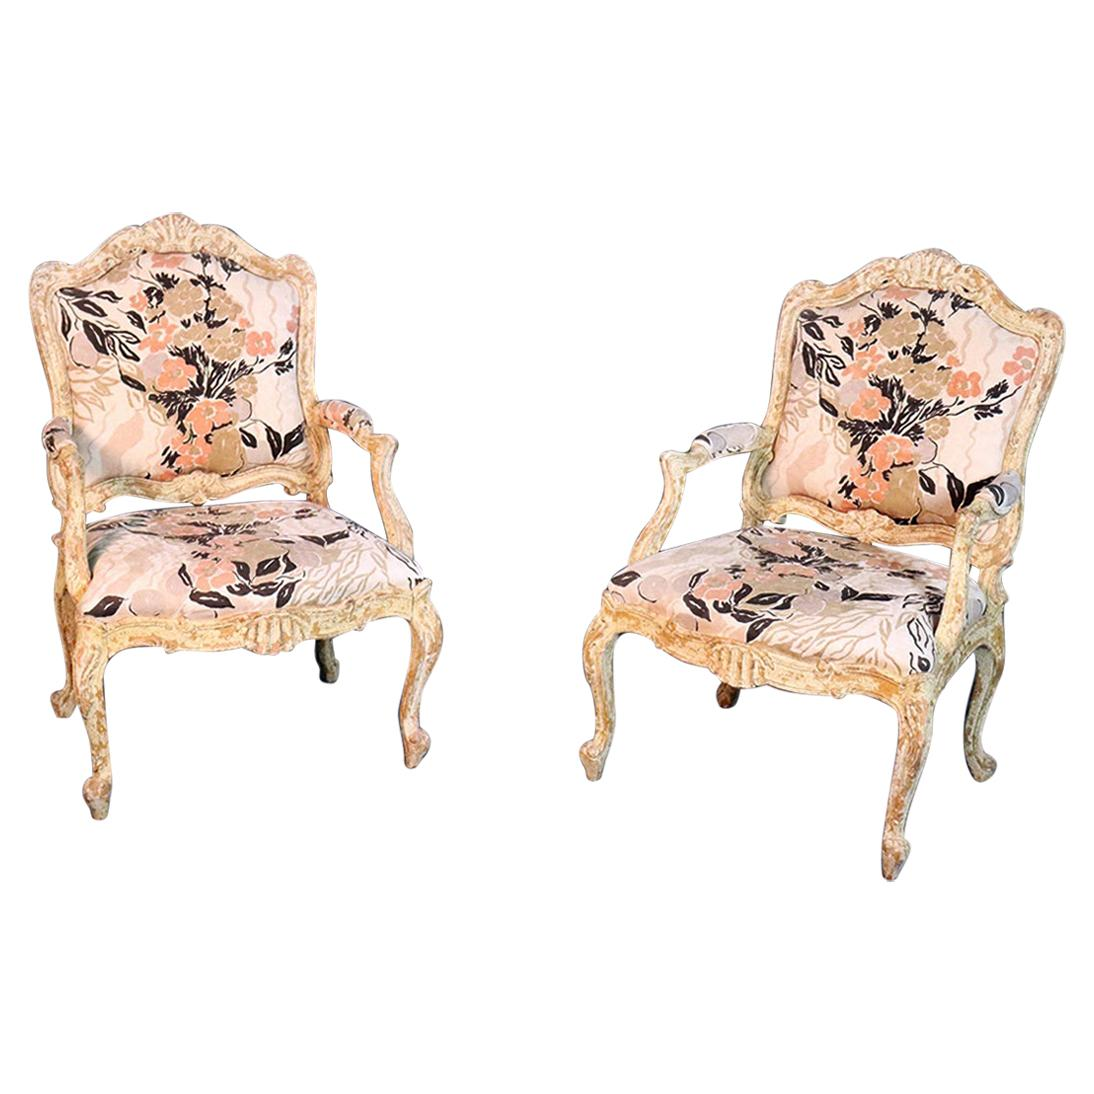 Pair of Distressed Louis XV Style Fauteuils